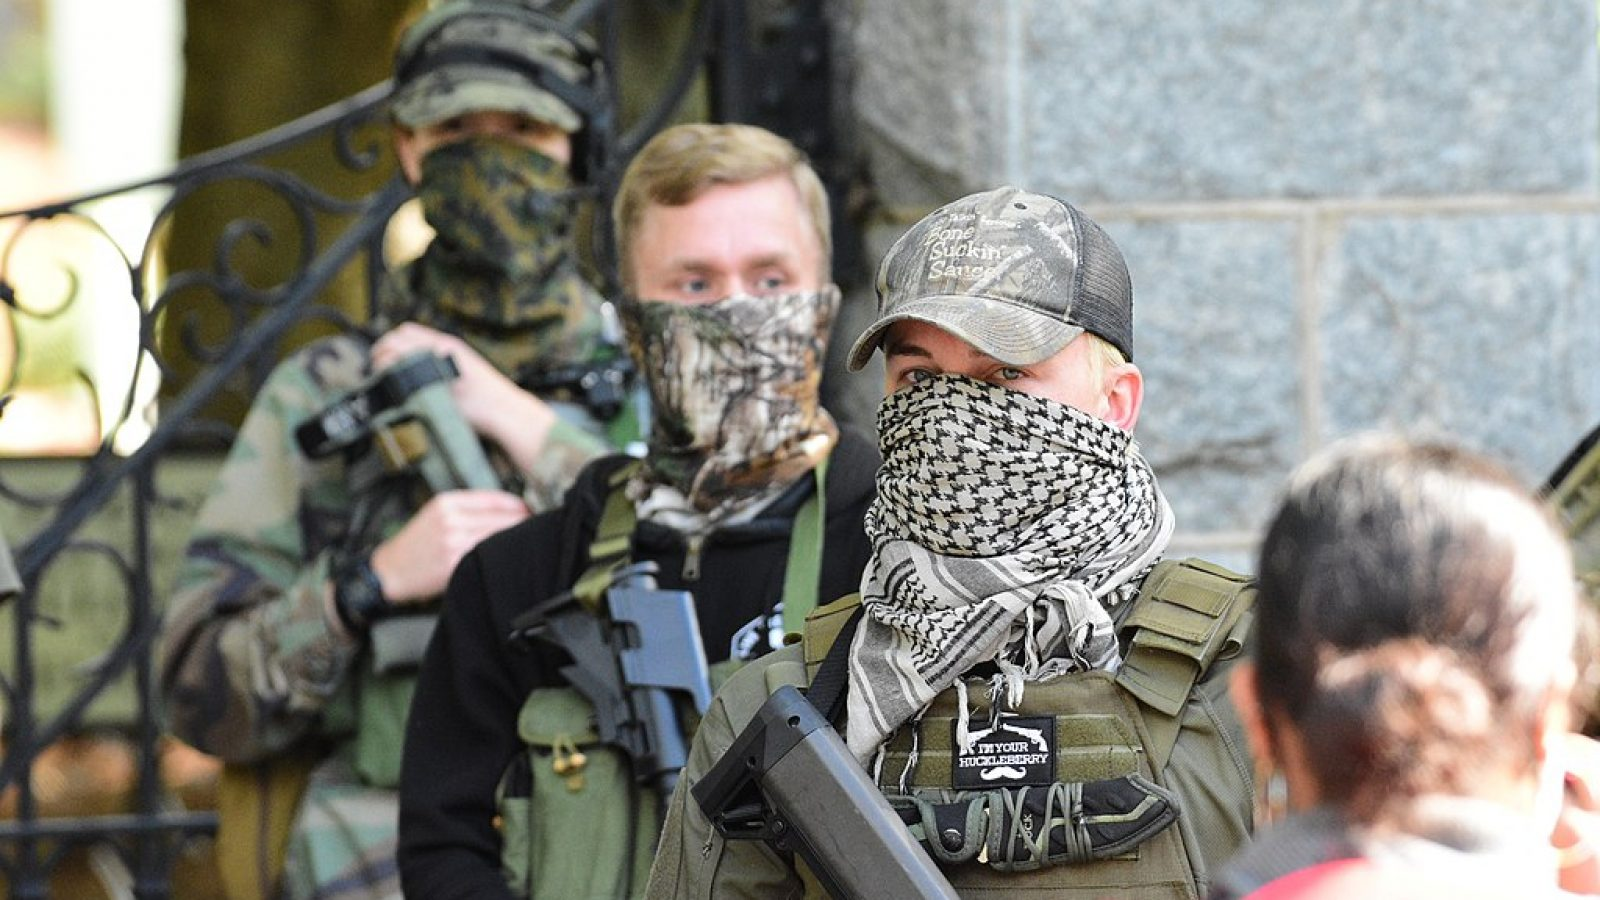 Masked Boogaloo bois attend a rally carrying rifles.